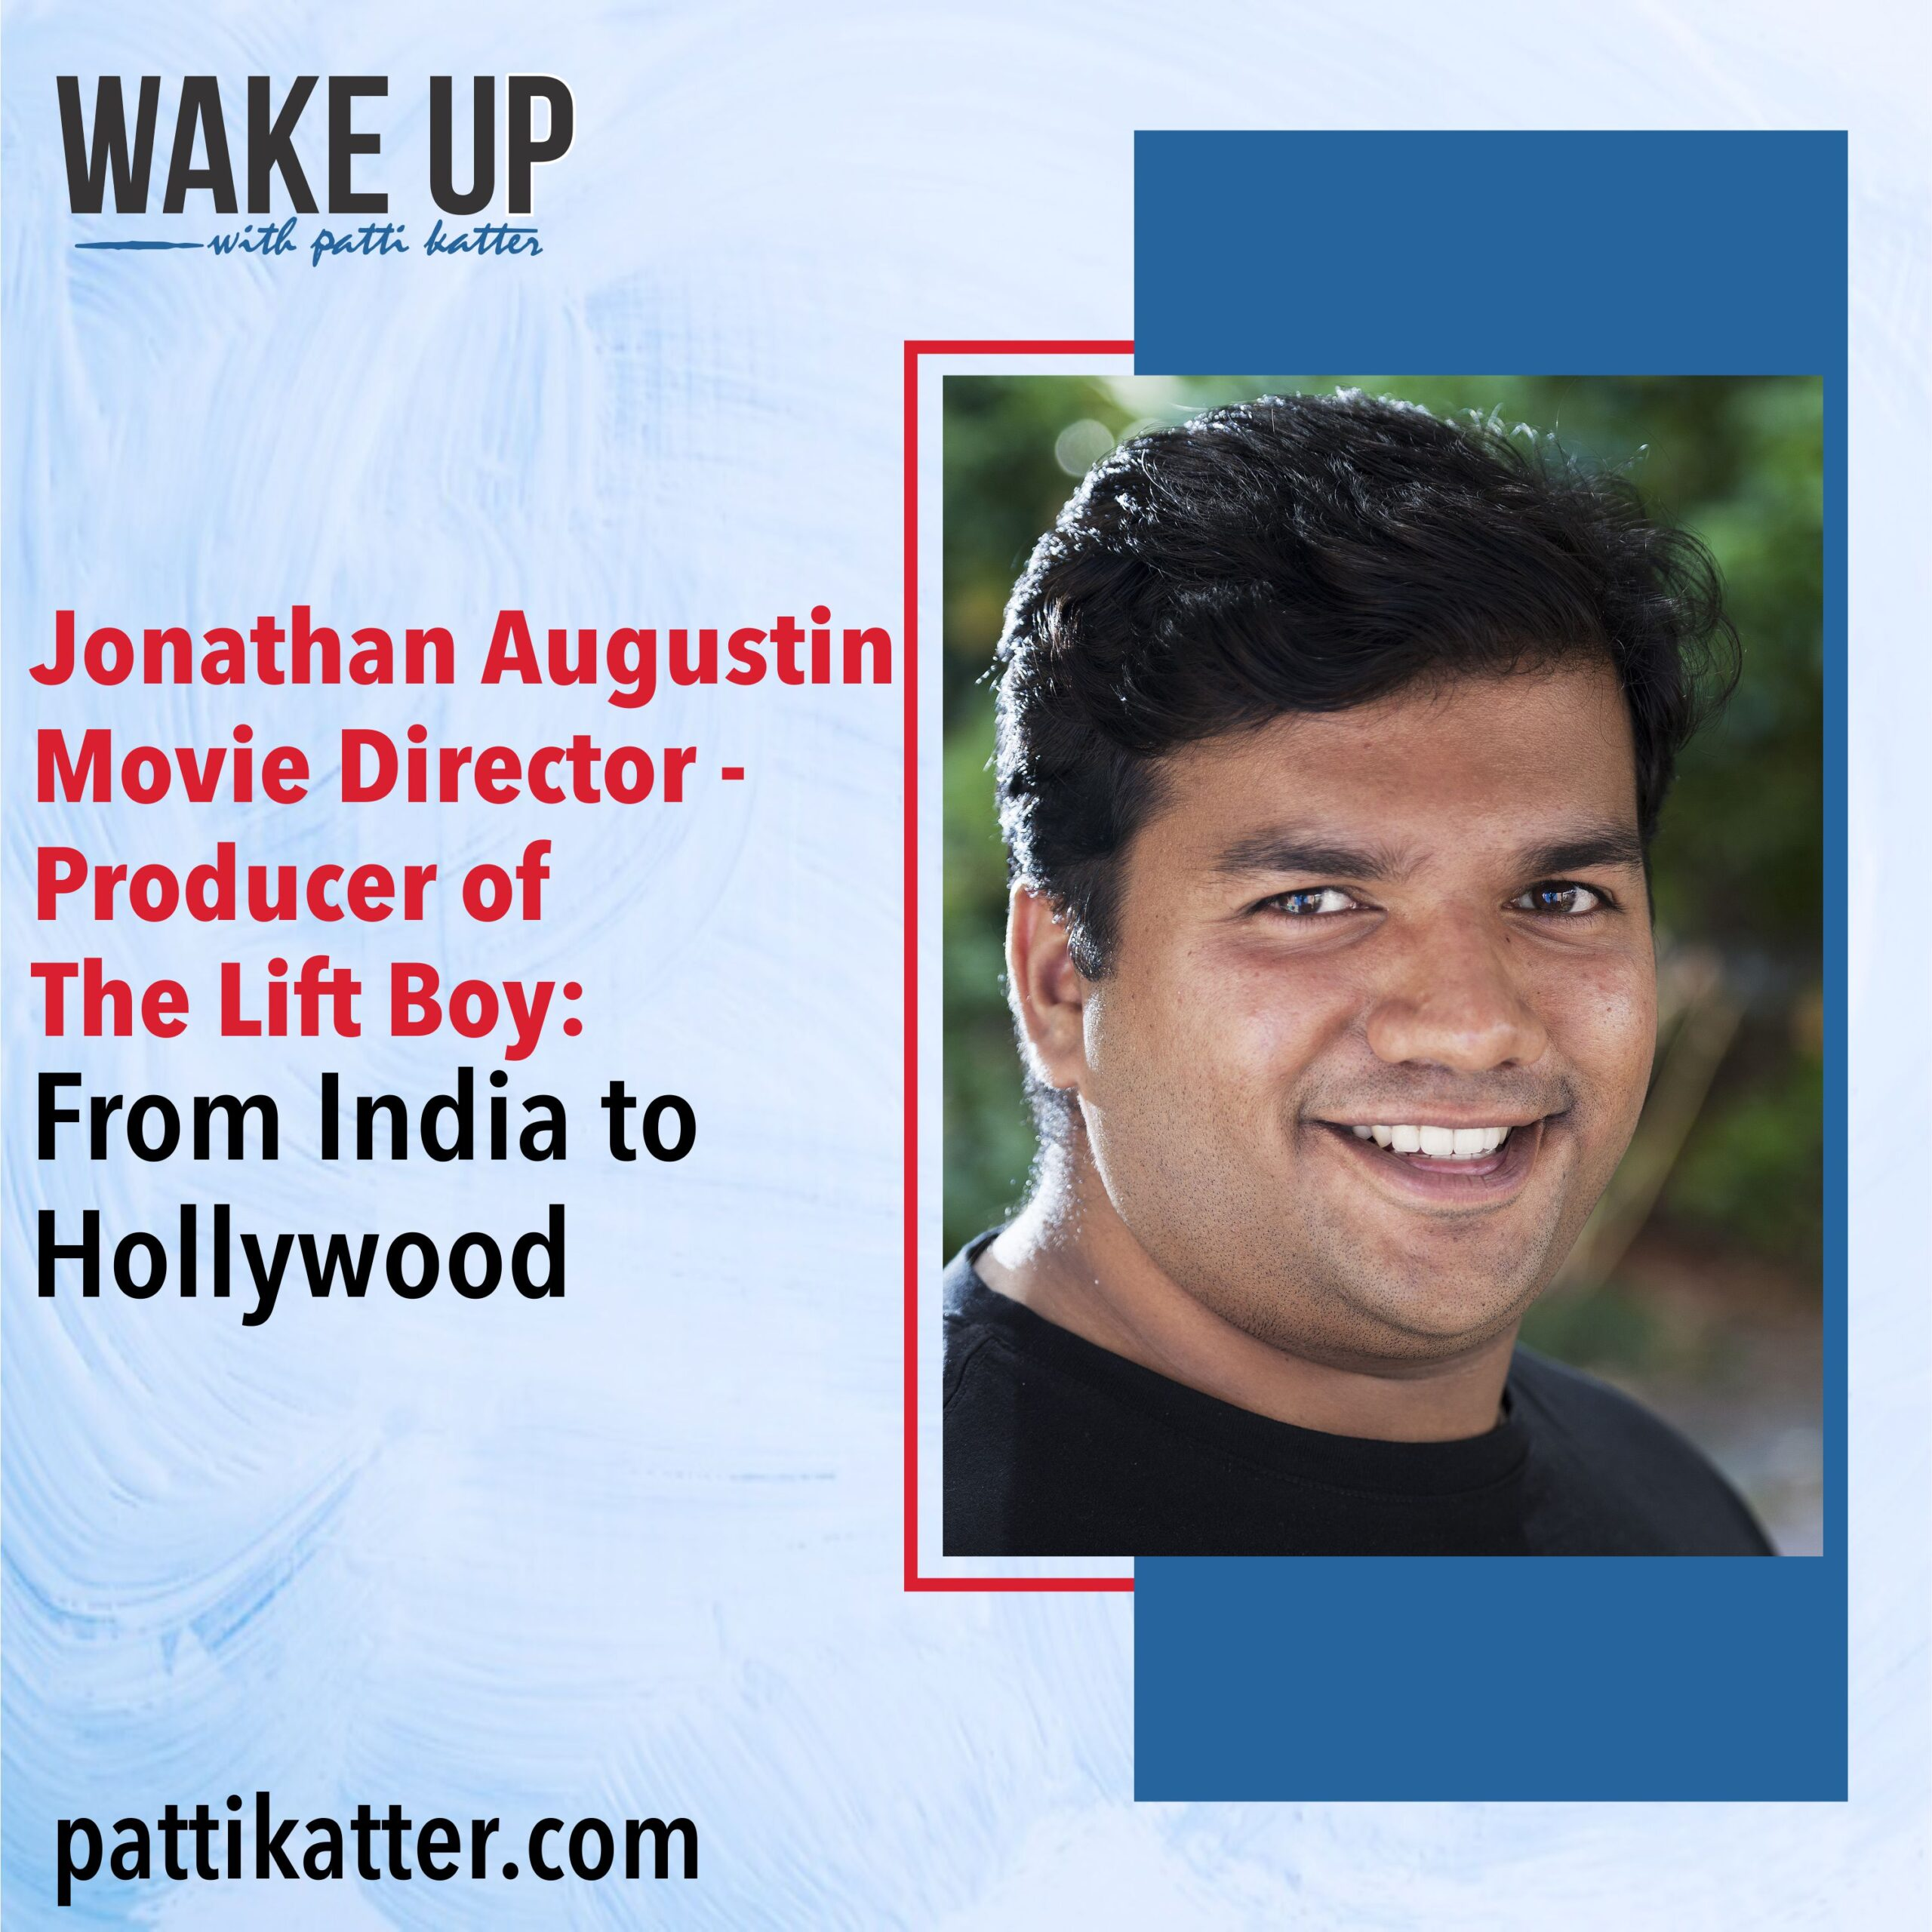 Jonathan Augustin Movie Director-Producer of The Lift Boy: From India to Hollywood